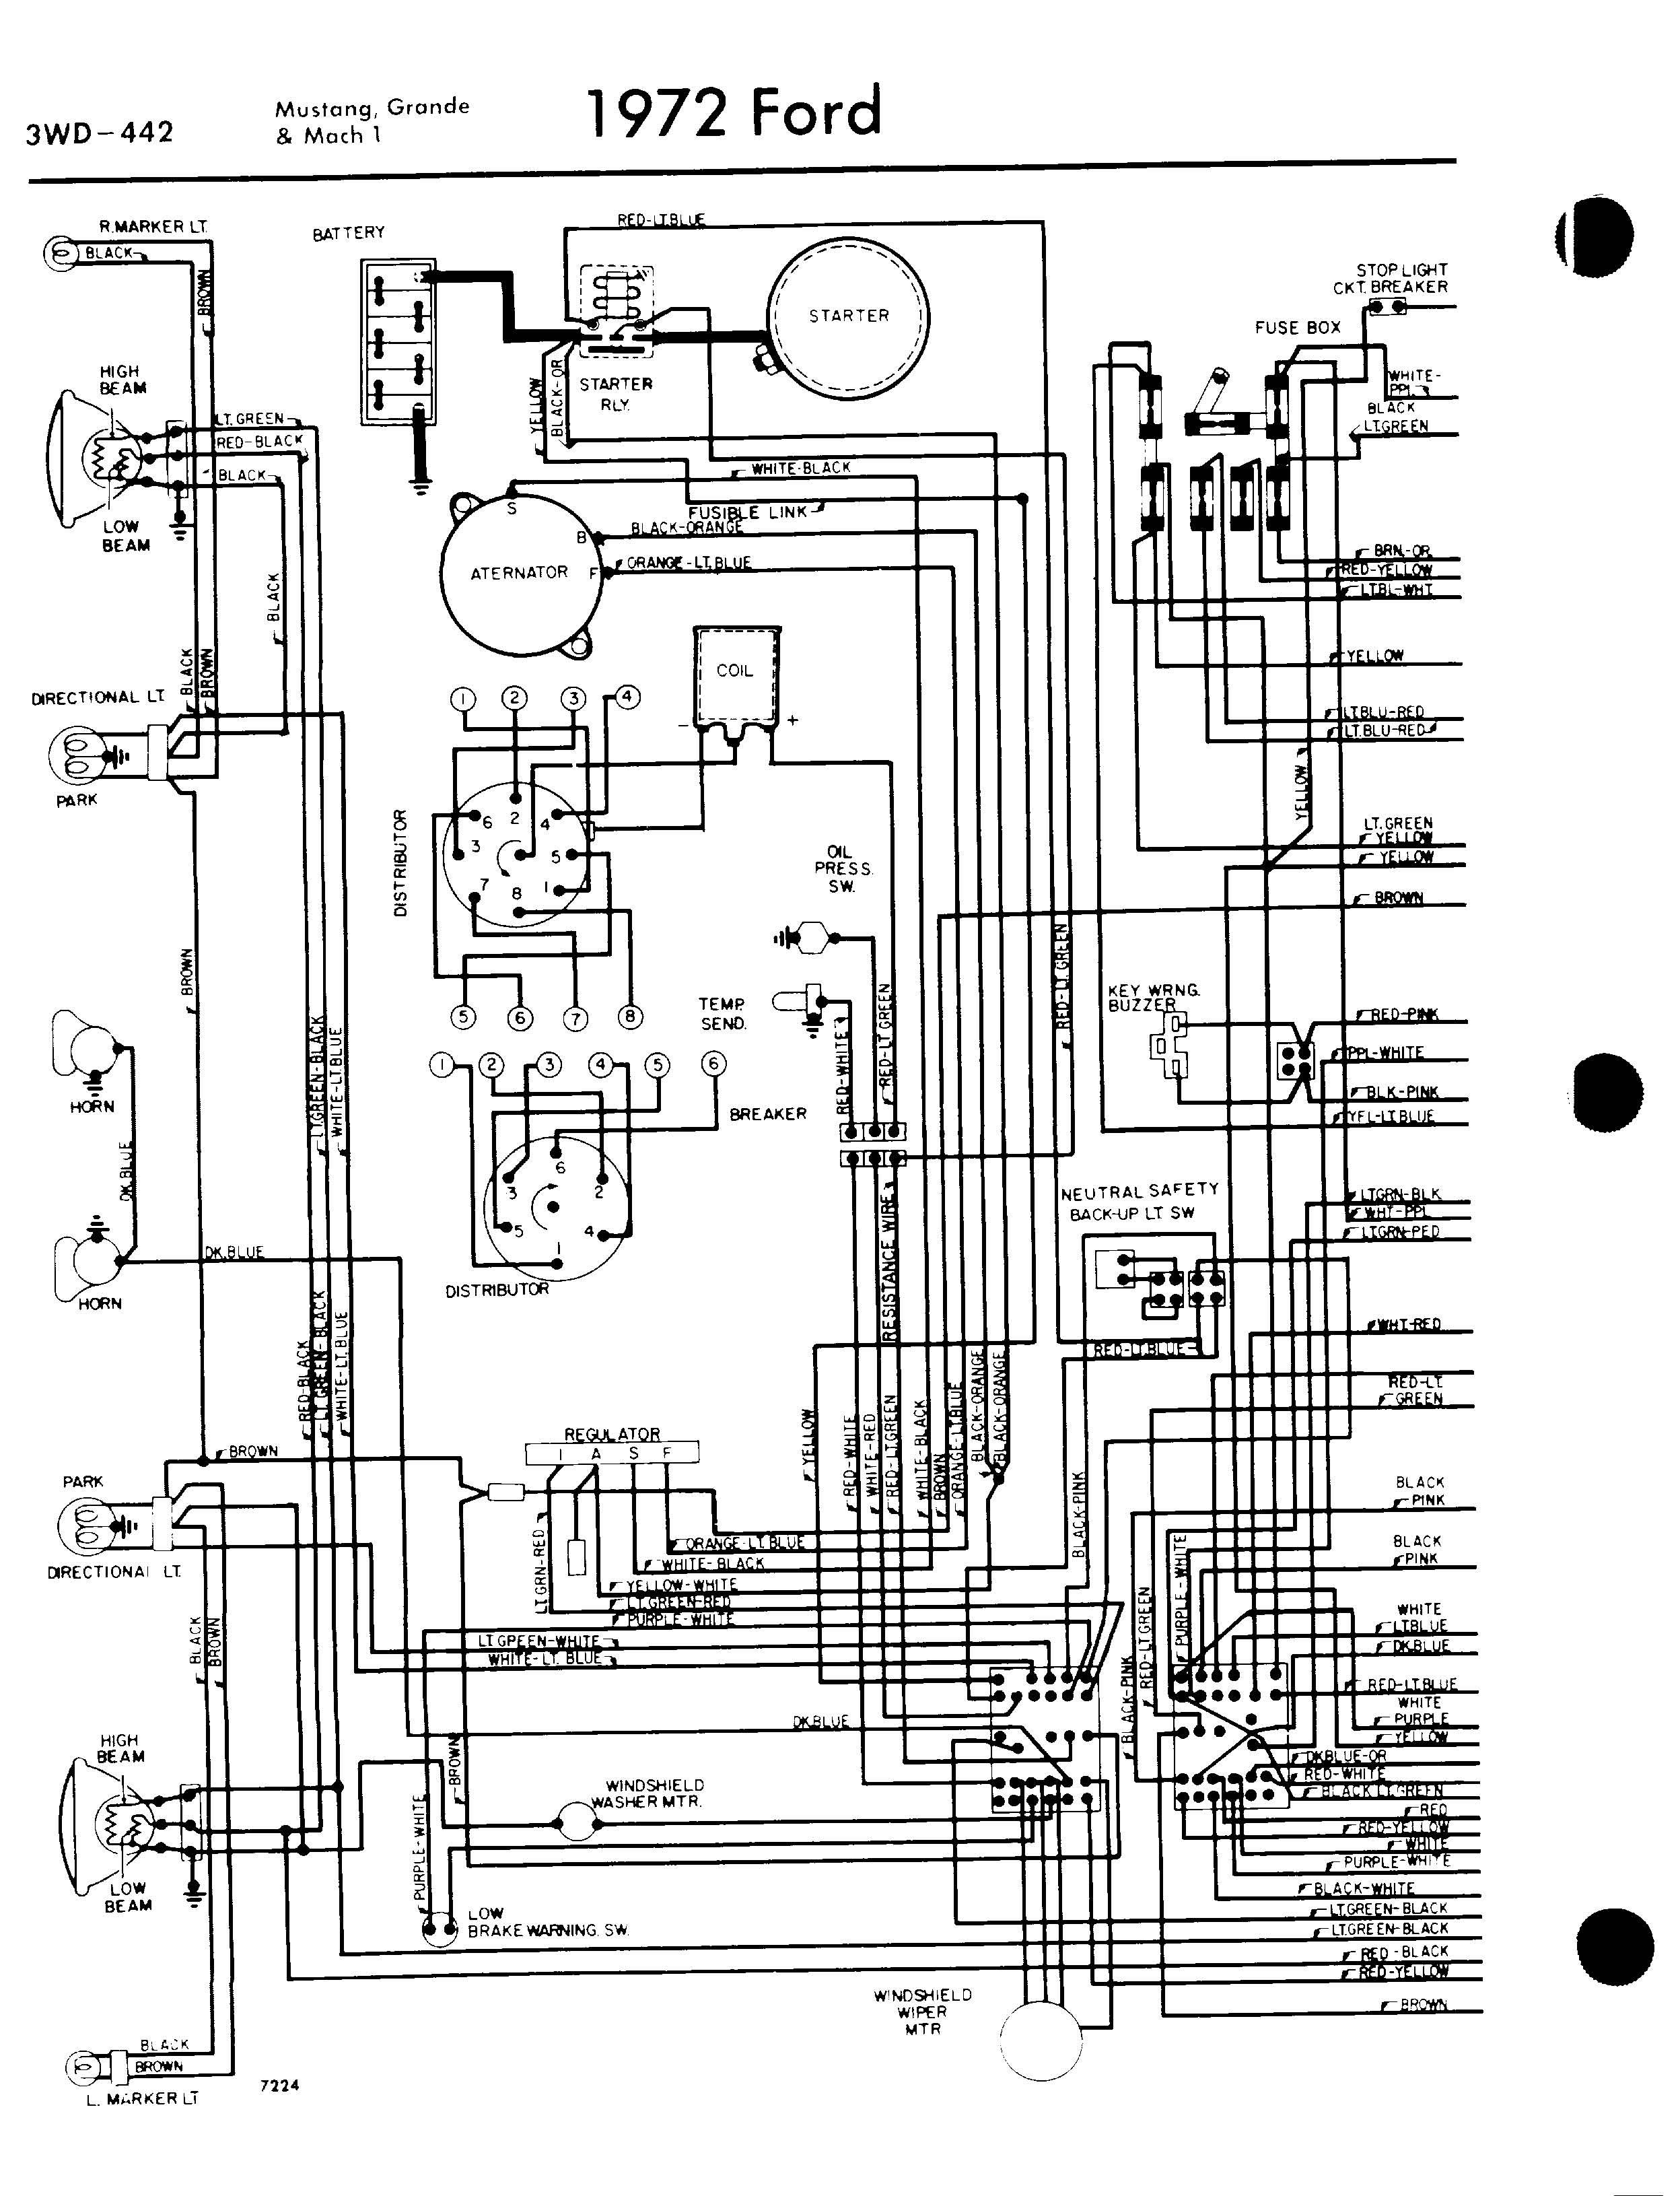 72 Mach1 Alternator Wire Harness Diagram Yahoo Search Results Yahoo Image Search Results Electrical Circuit Diagram Alternator Mustang